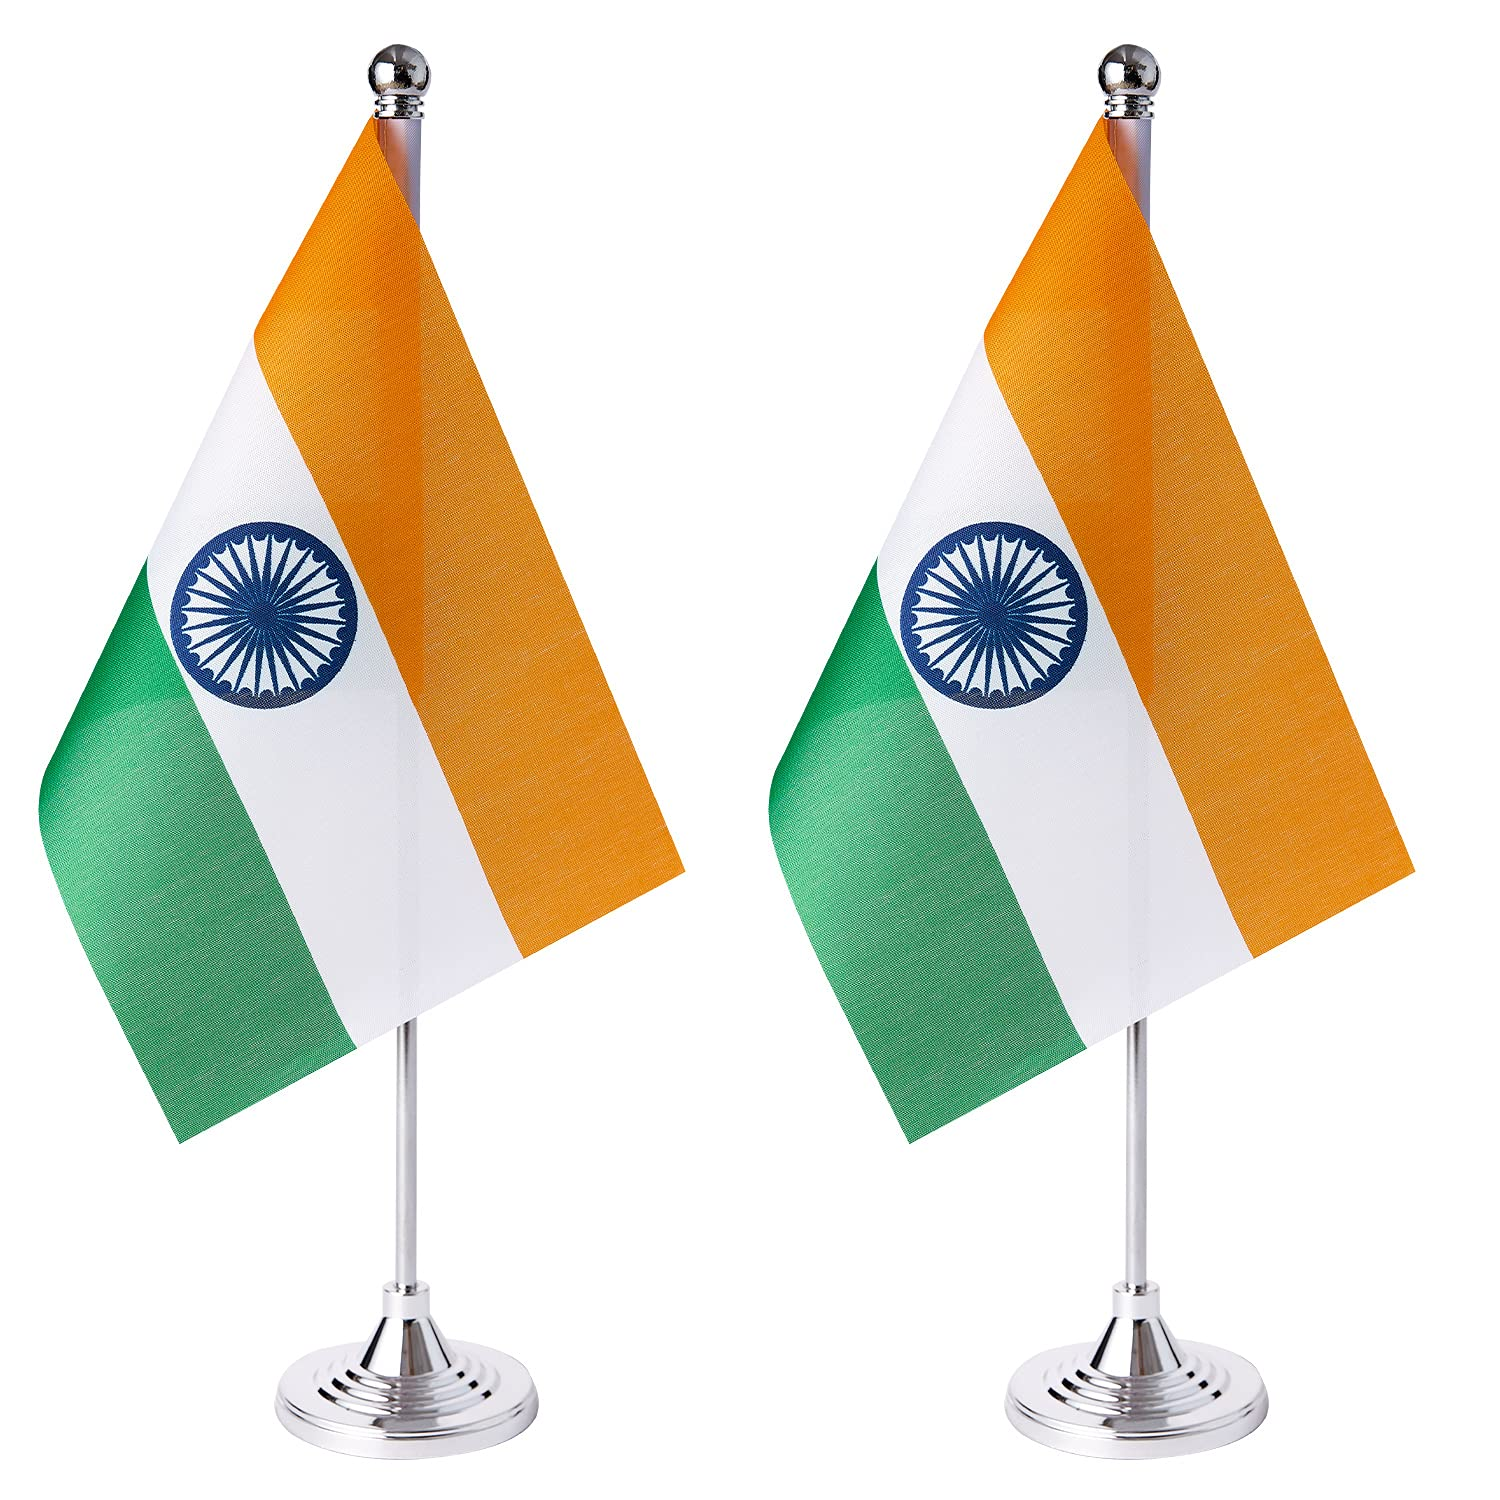 ZXvZYT 2 Pack India flag Indian Table Flag Small Mini Indian Desk Flags With Stand Base,International Festival Events Celebration Decorate,Home office Decorations